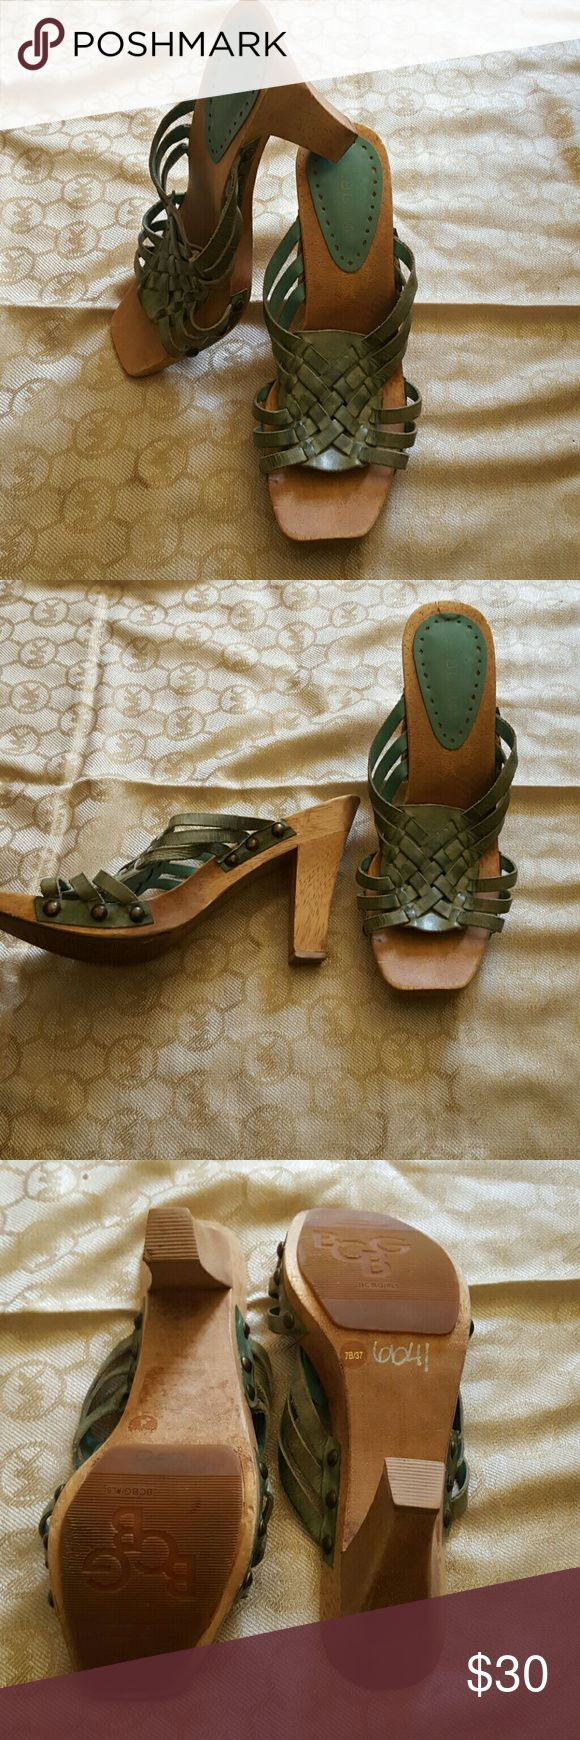 SALE BCBGirls Lady Shoes size 7 Condition 7/10,size 7, color green, if you have any questions just let me know. Thanks. BCBGirls Shoes Heels